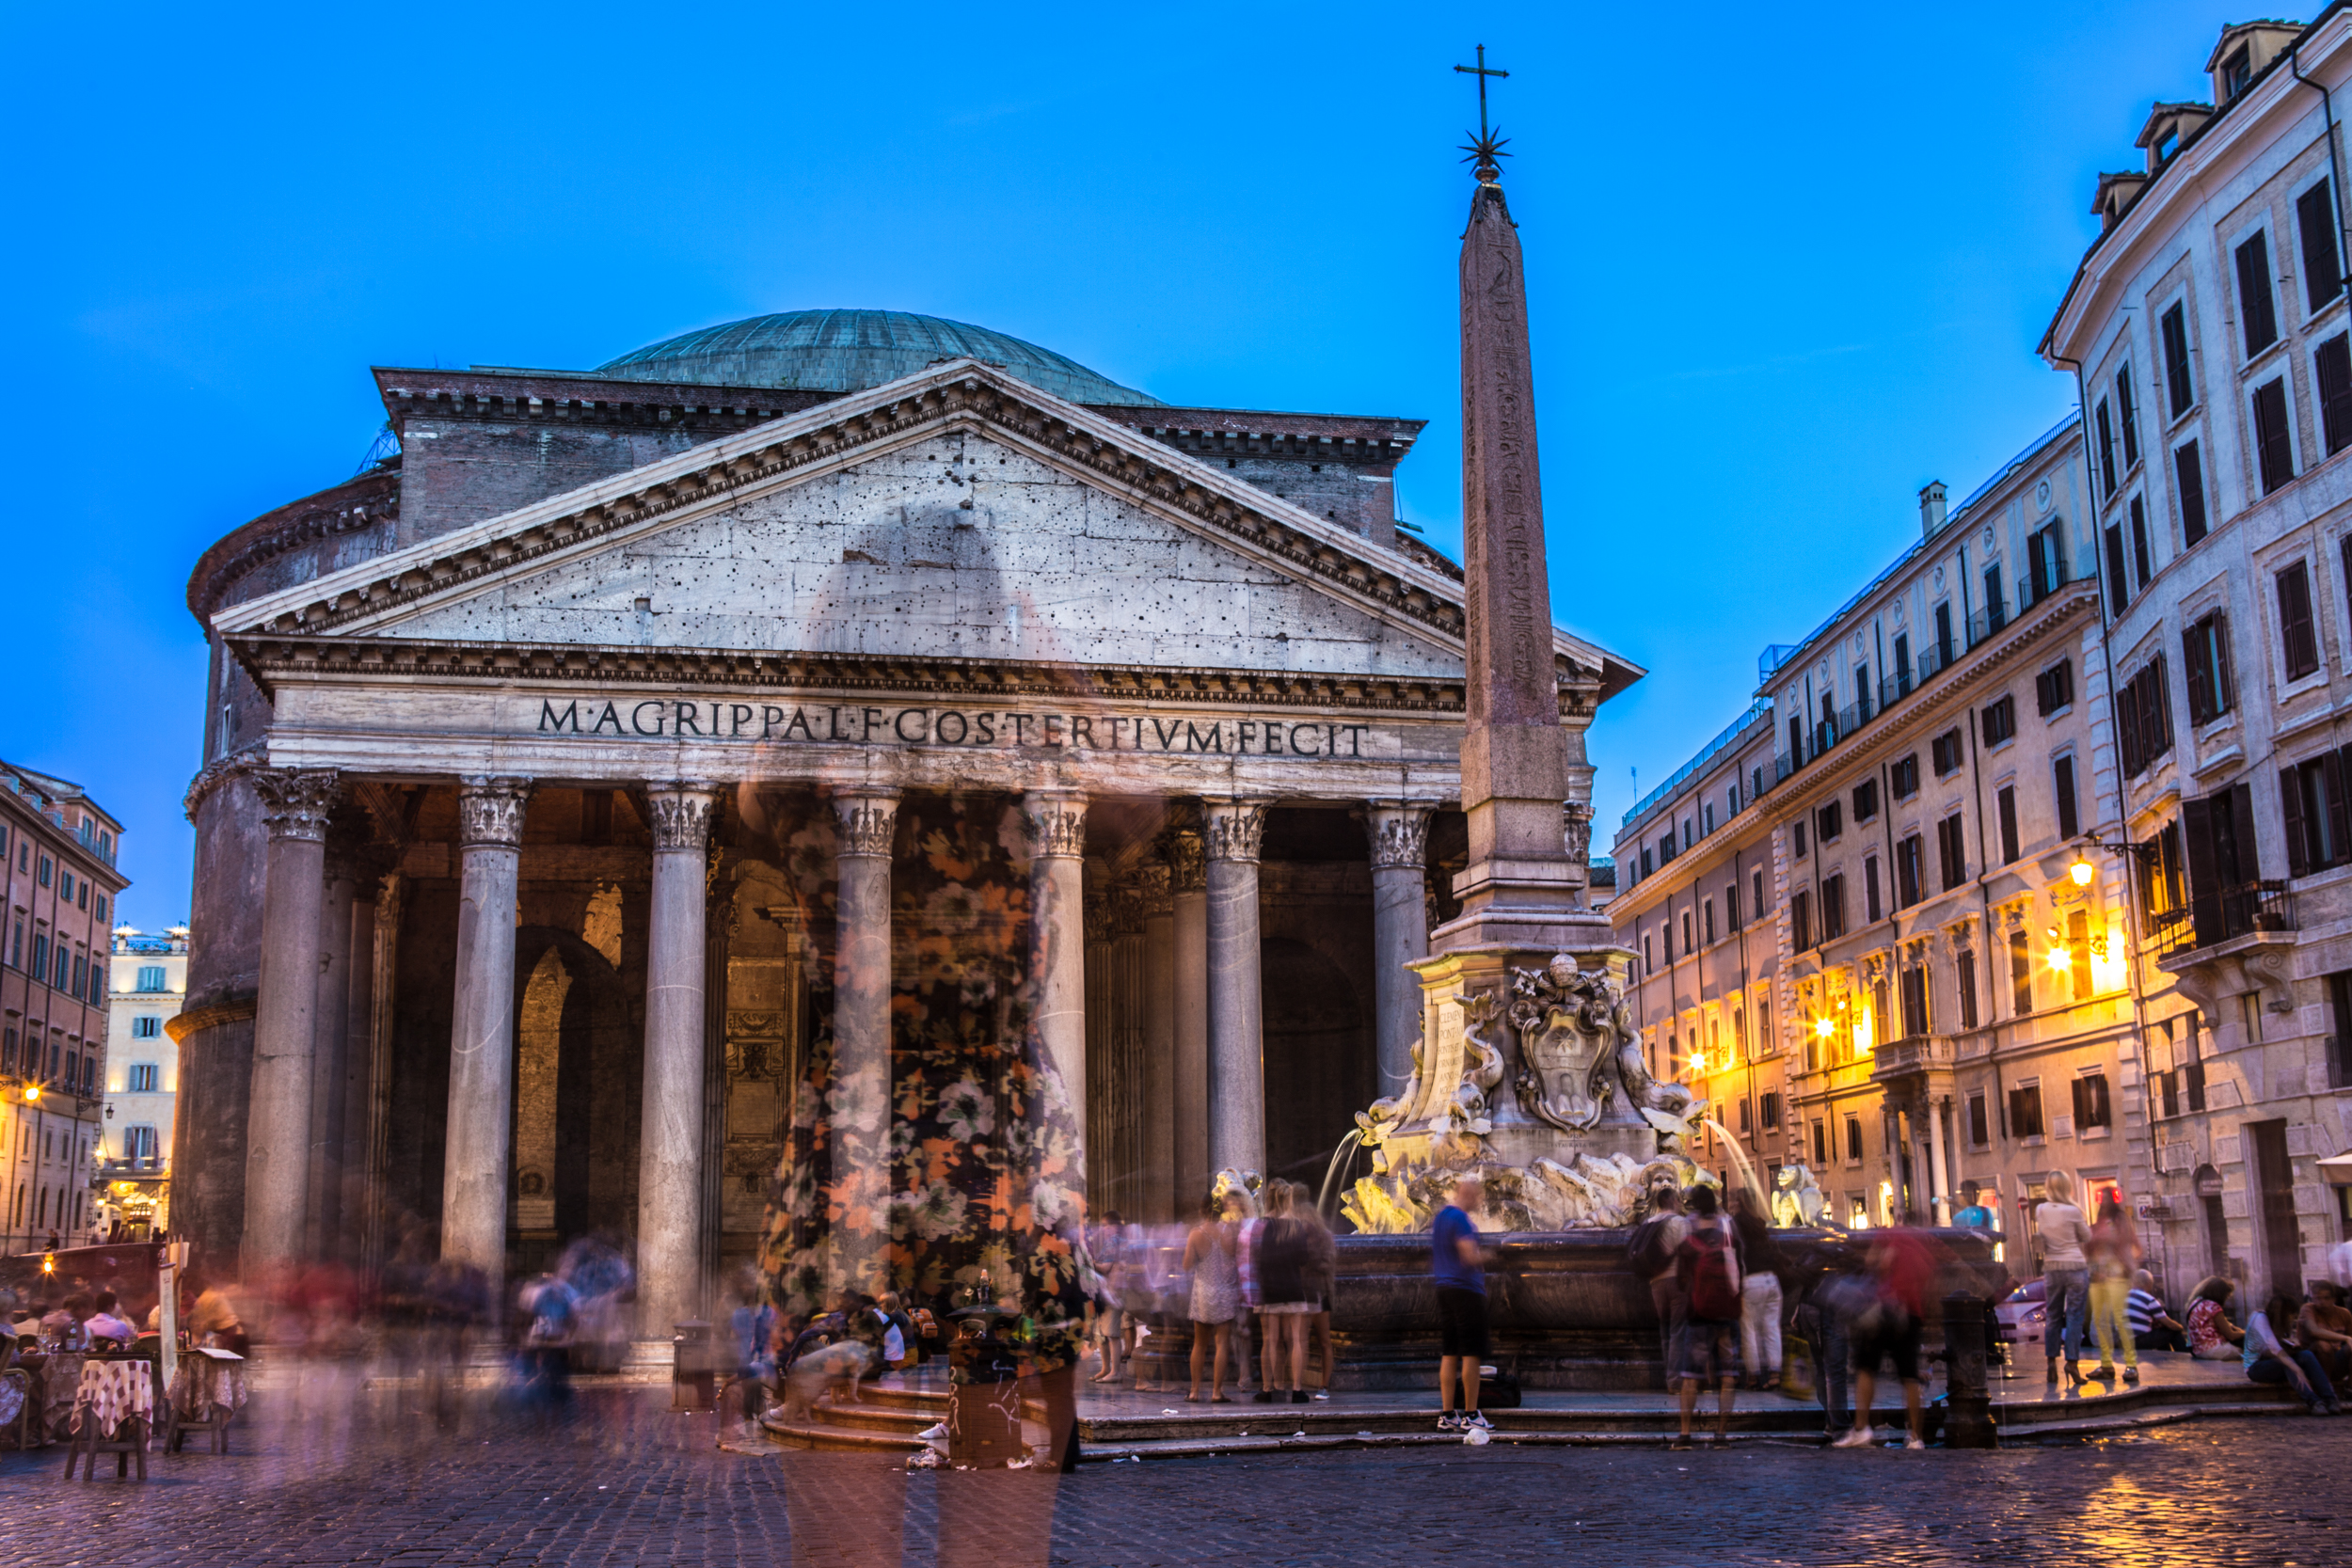 pantheon-italy-fountain-rome-tippy-dray-photography-travel-summer-long-exposure-photographer